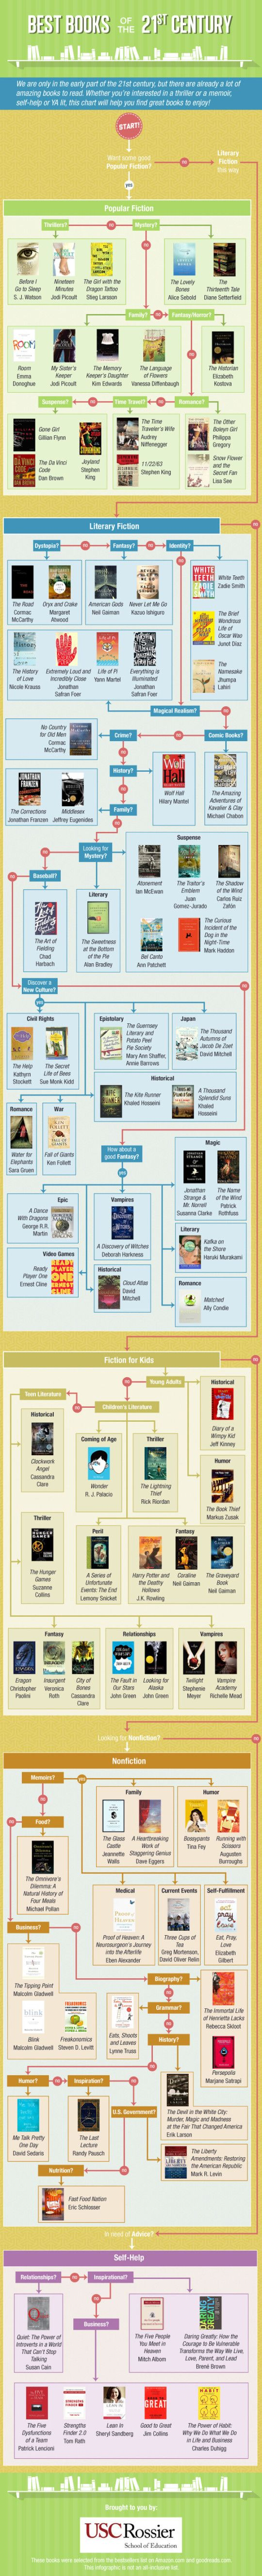 A guide to best books of the 21st century (infographic)